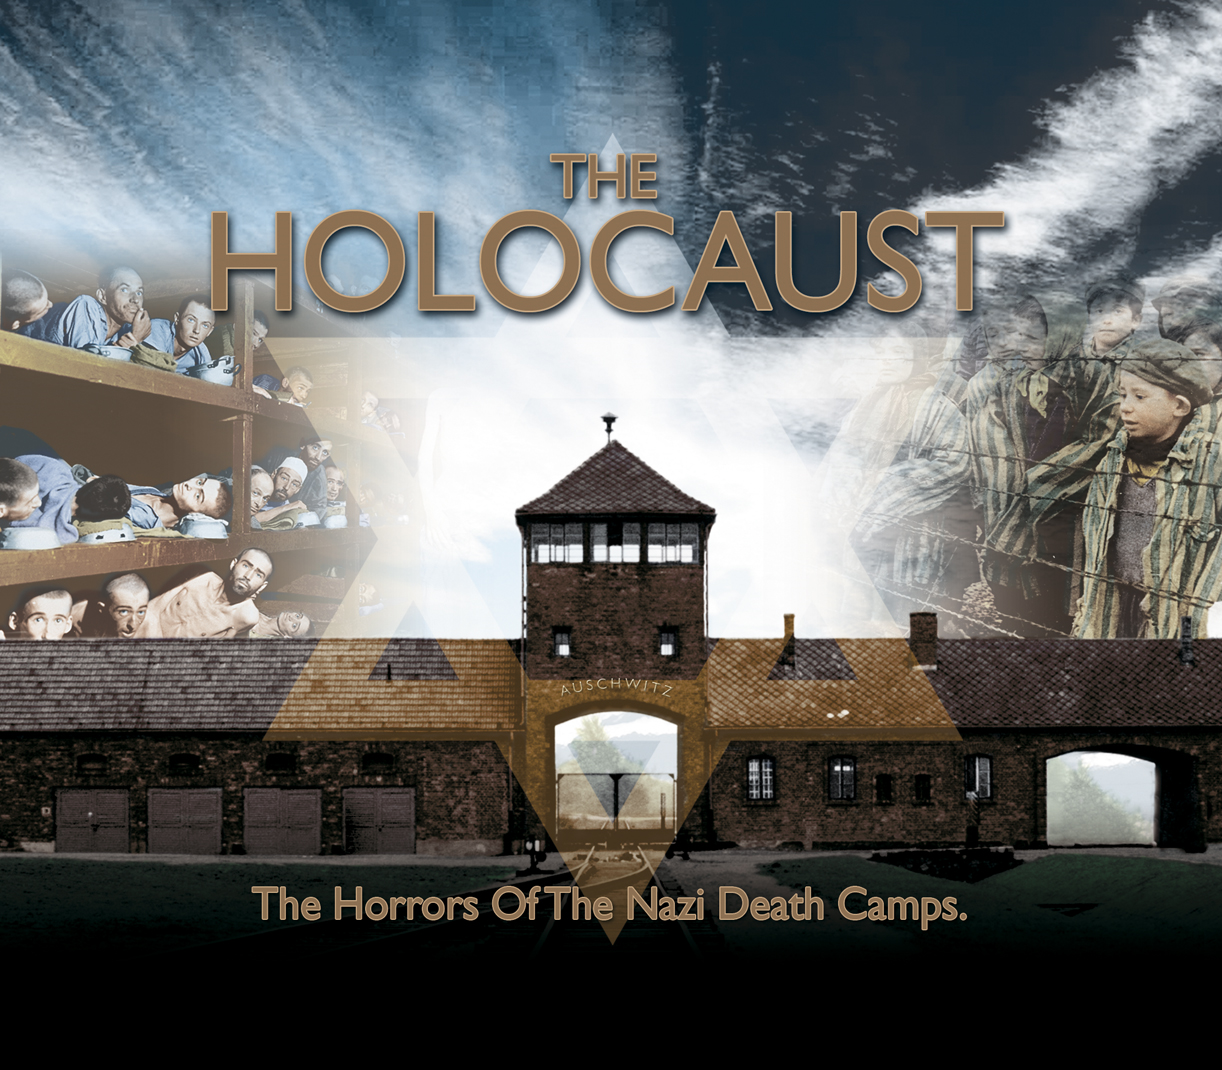 The Holocaust: Nazi Death Camps By: Patrick Morgan